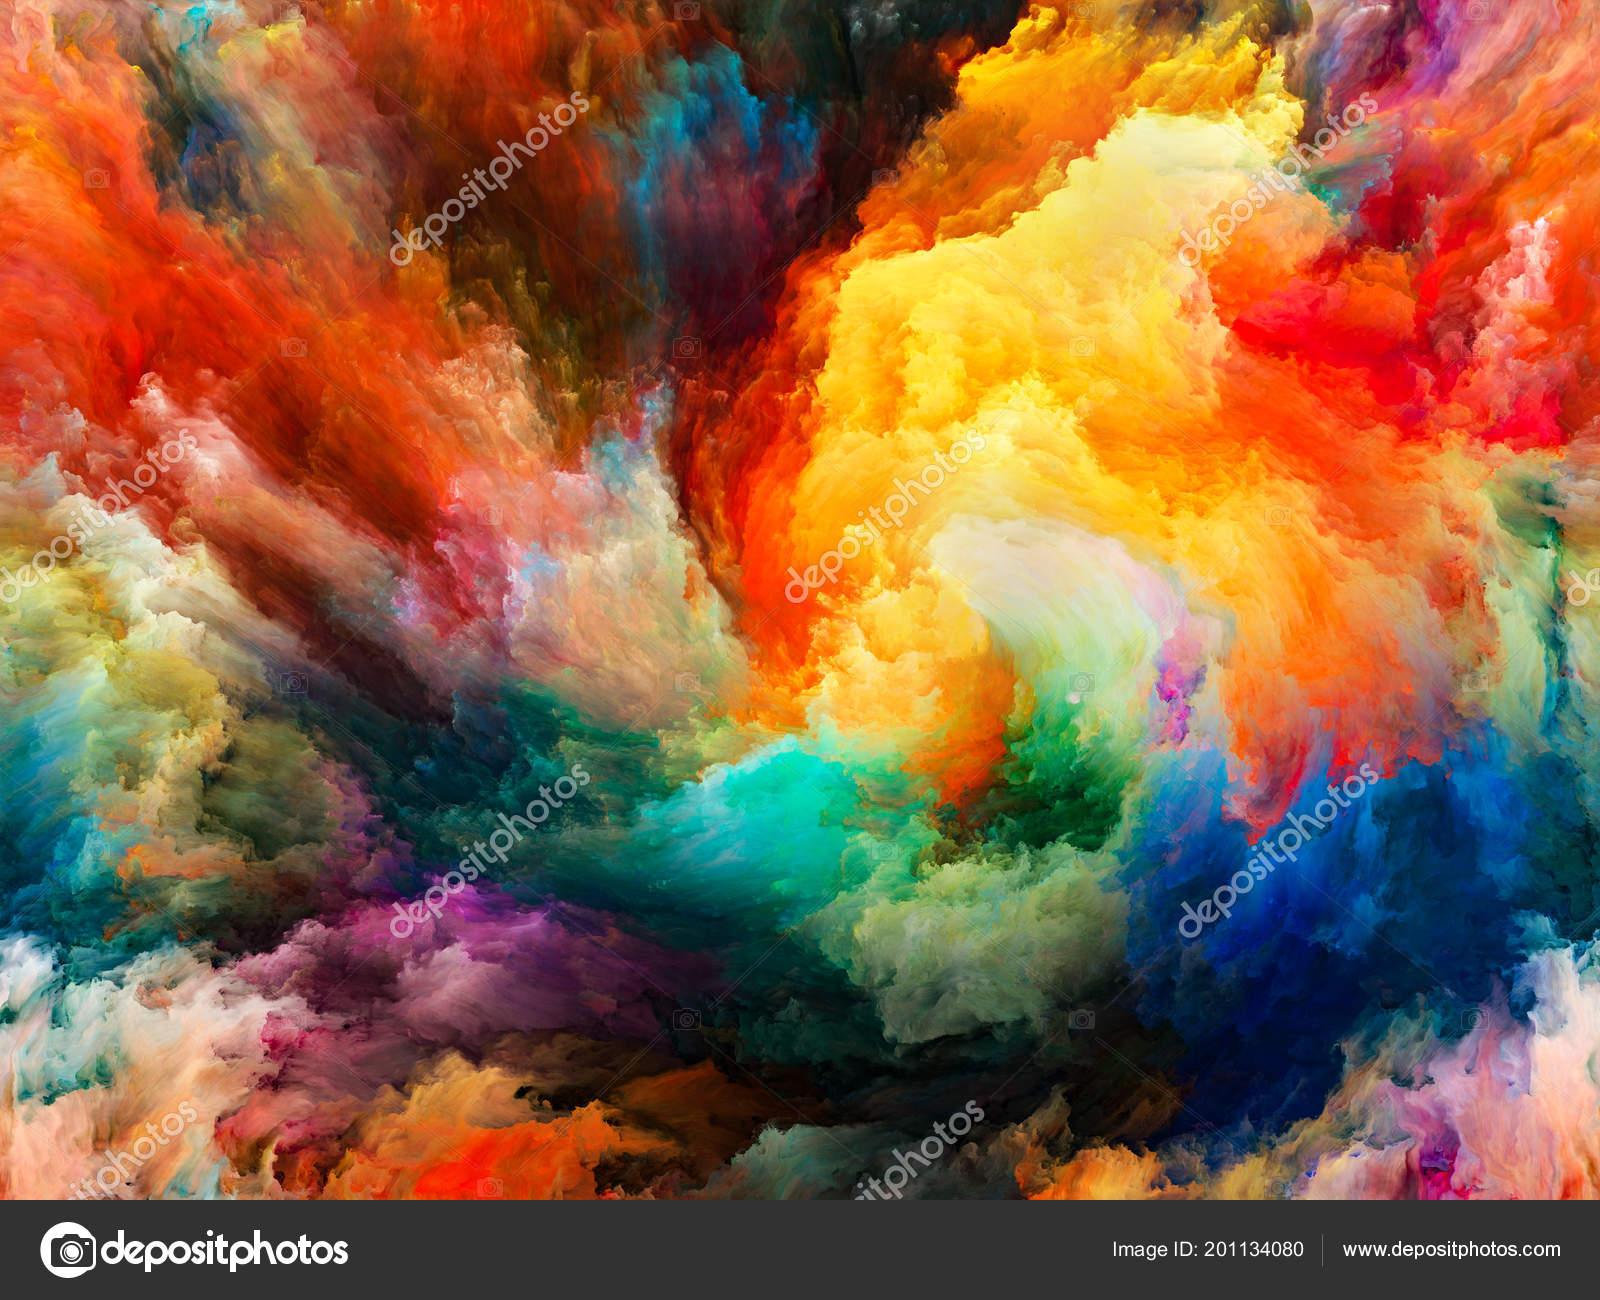 Vibrant Color Wallpaper Paint Motion Subject Creativity Imagination Energy Life Stock Photo